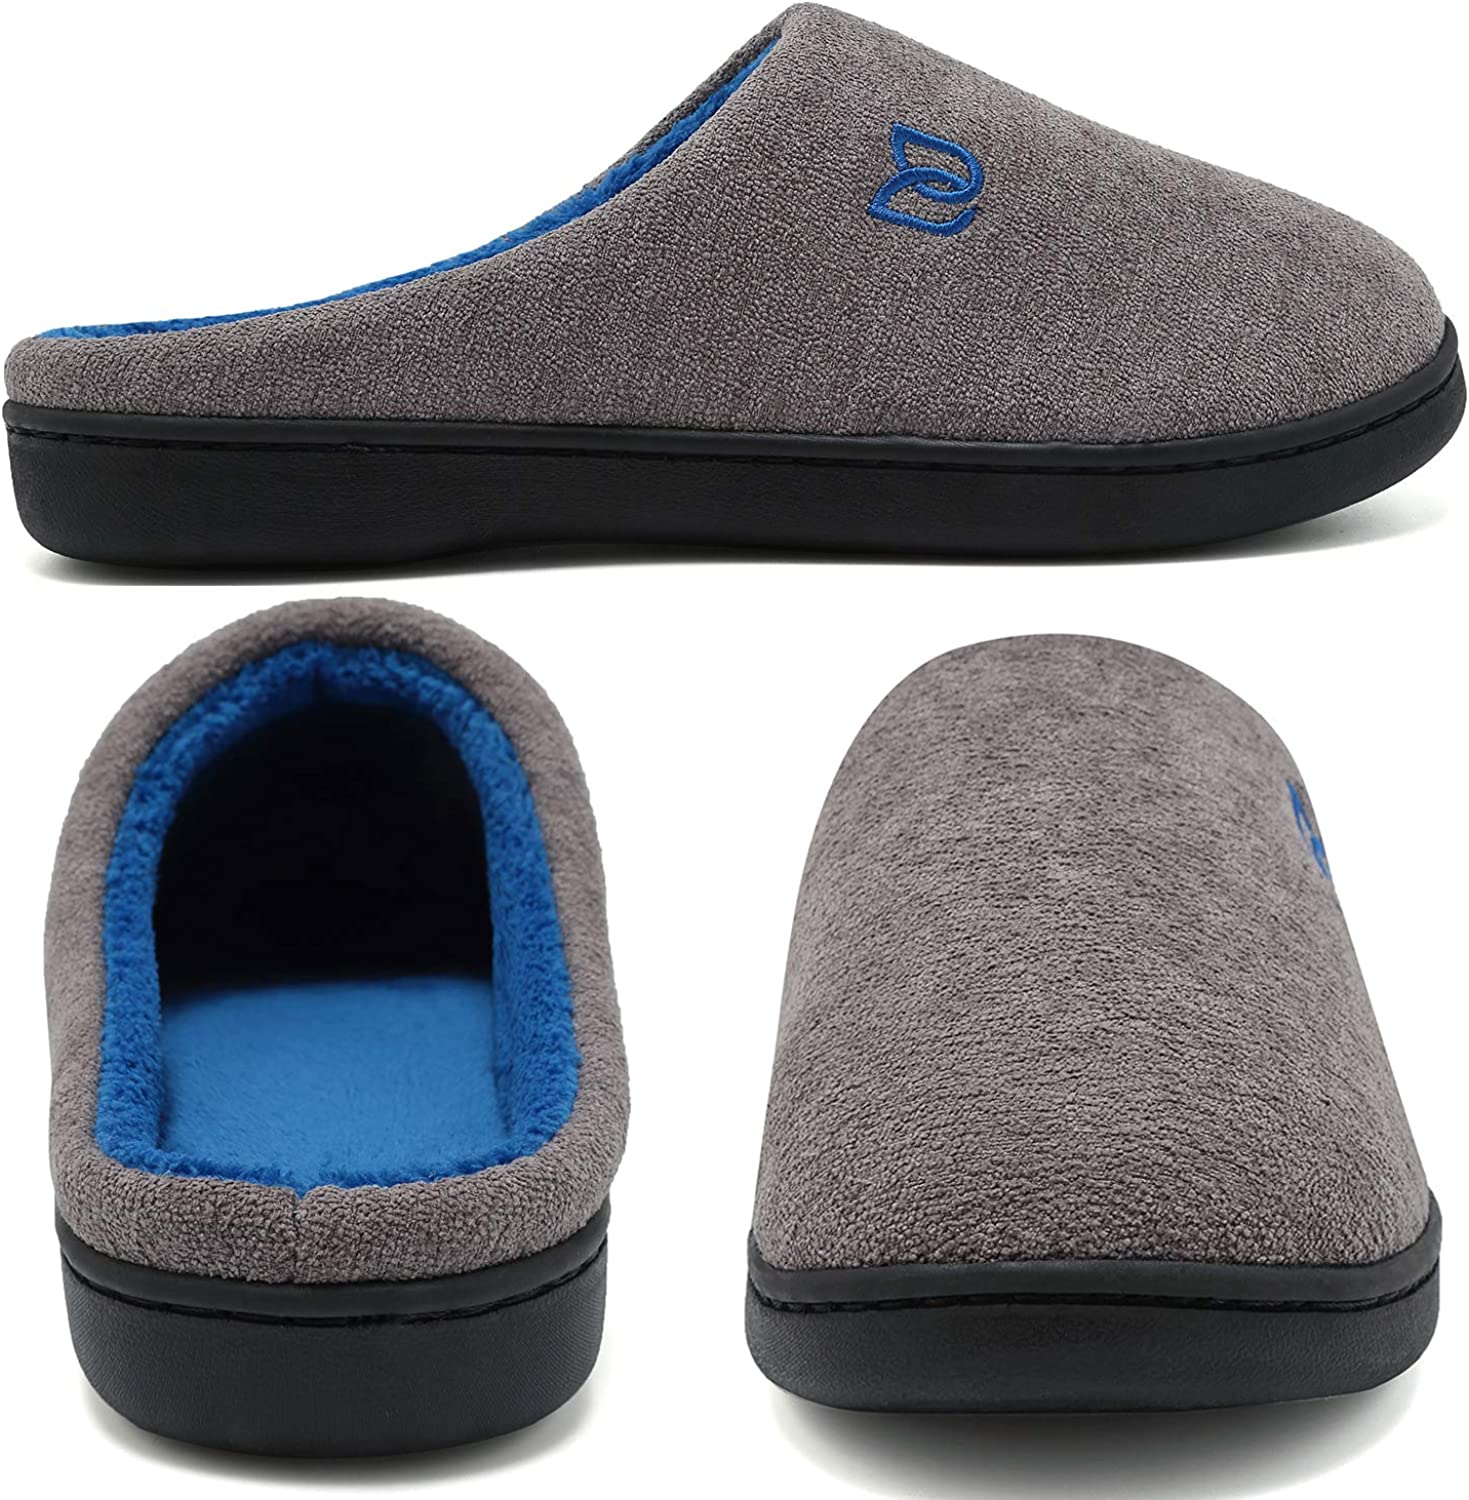 IceUnicorn Womens Mens Comfort House Slippers Memory Foam Cotton Slippers House Shoes Slip On Indoor Outdoor